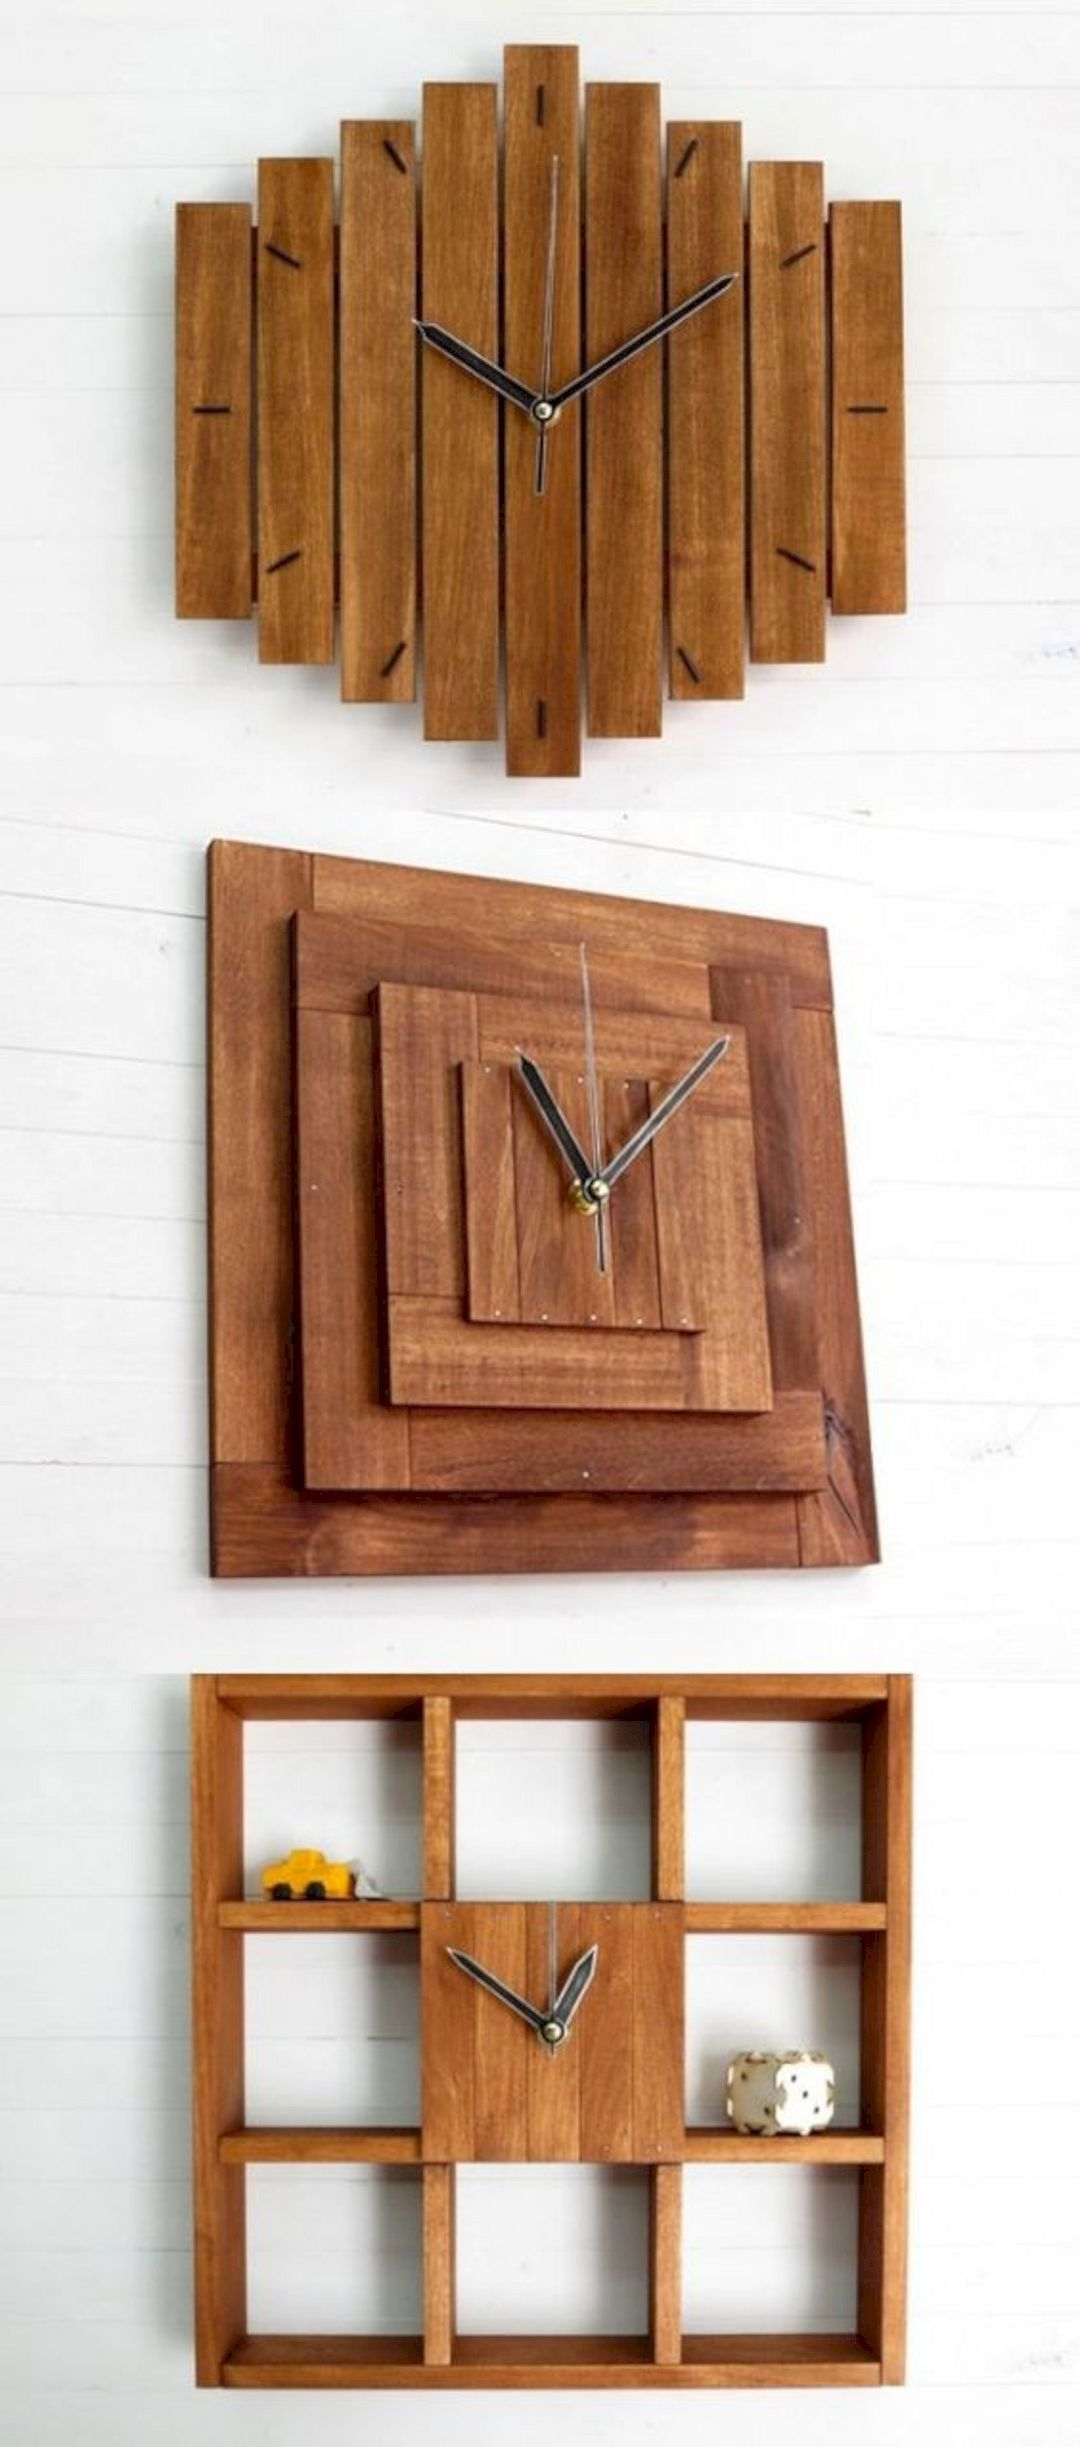 15 Home Decoration Ideas To Bring Out A Rustic Flair | Pinterest In Most Up To Date Wooden Wall Art (View 2 of 15)